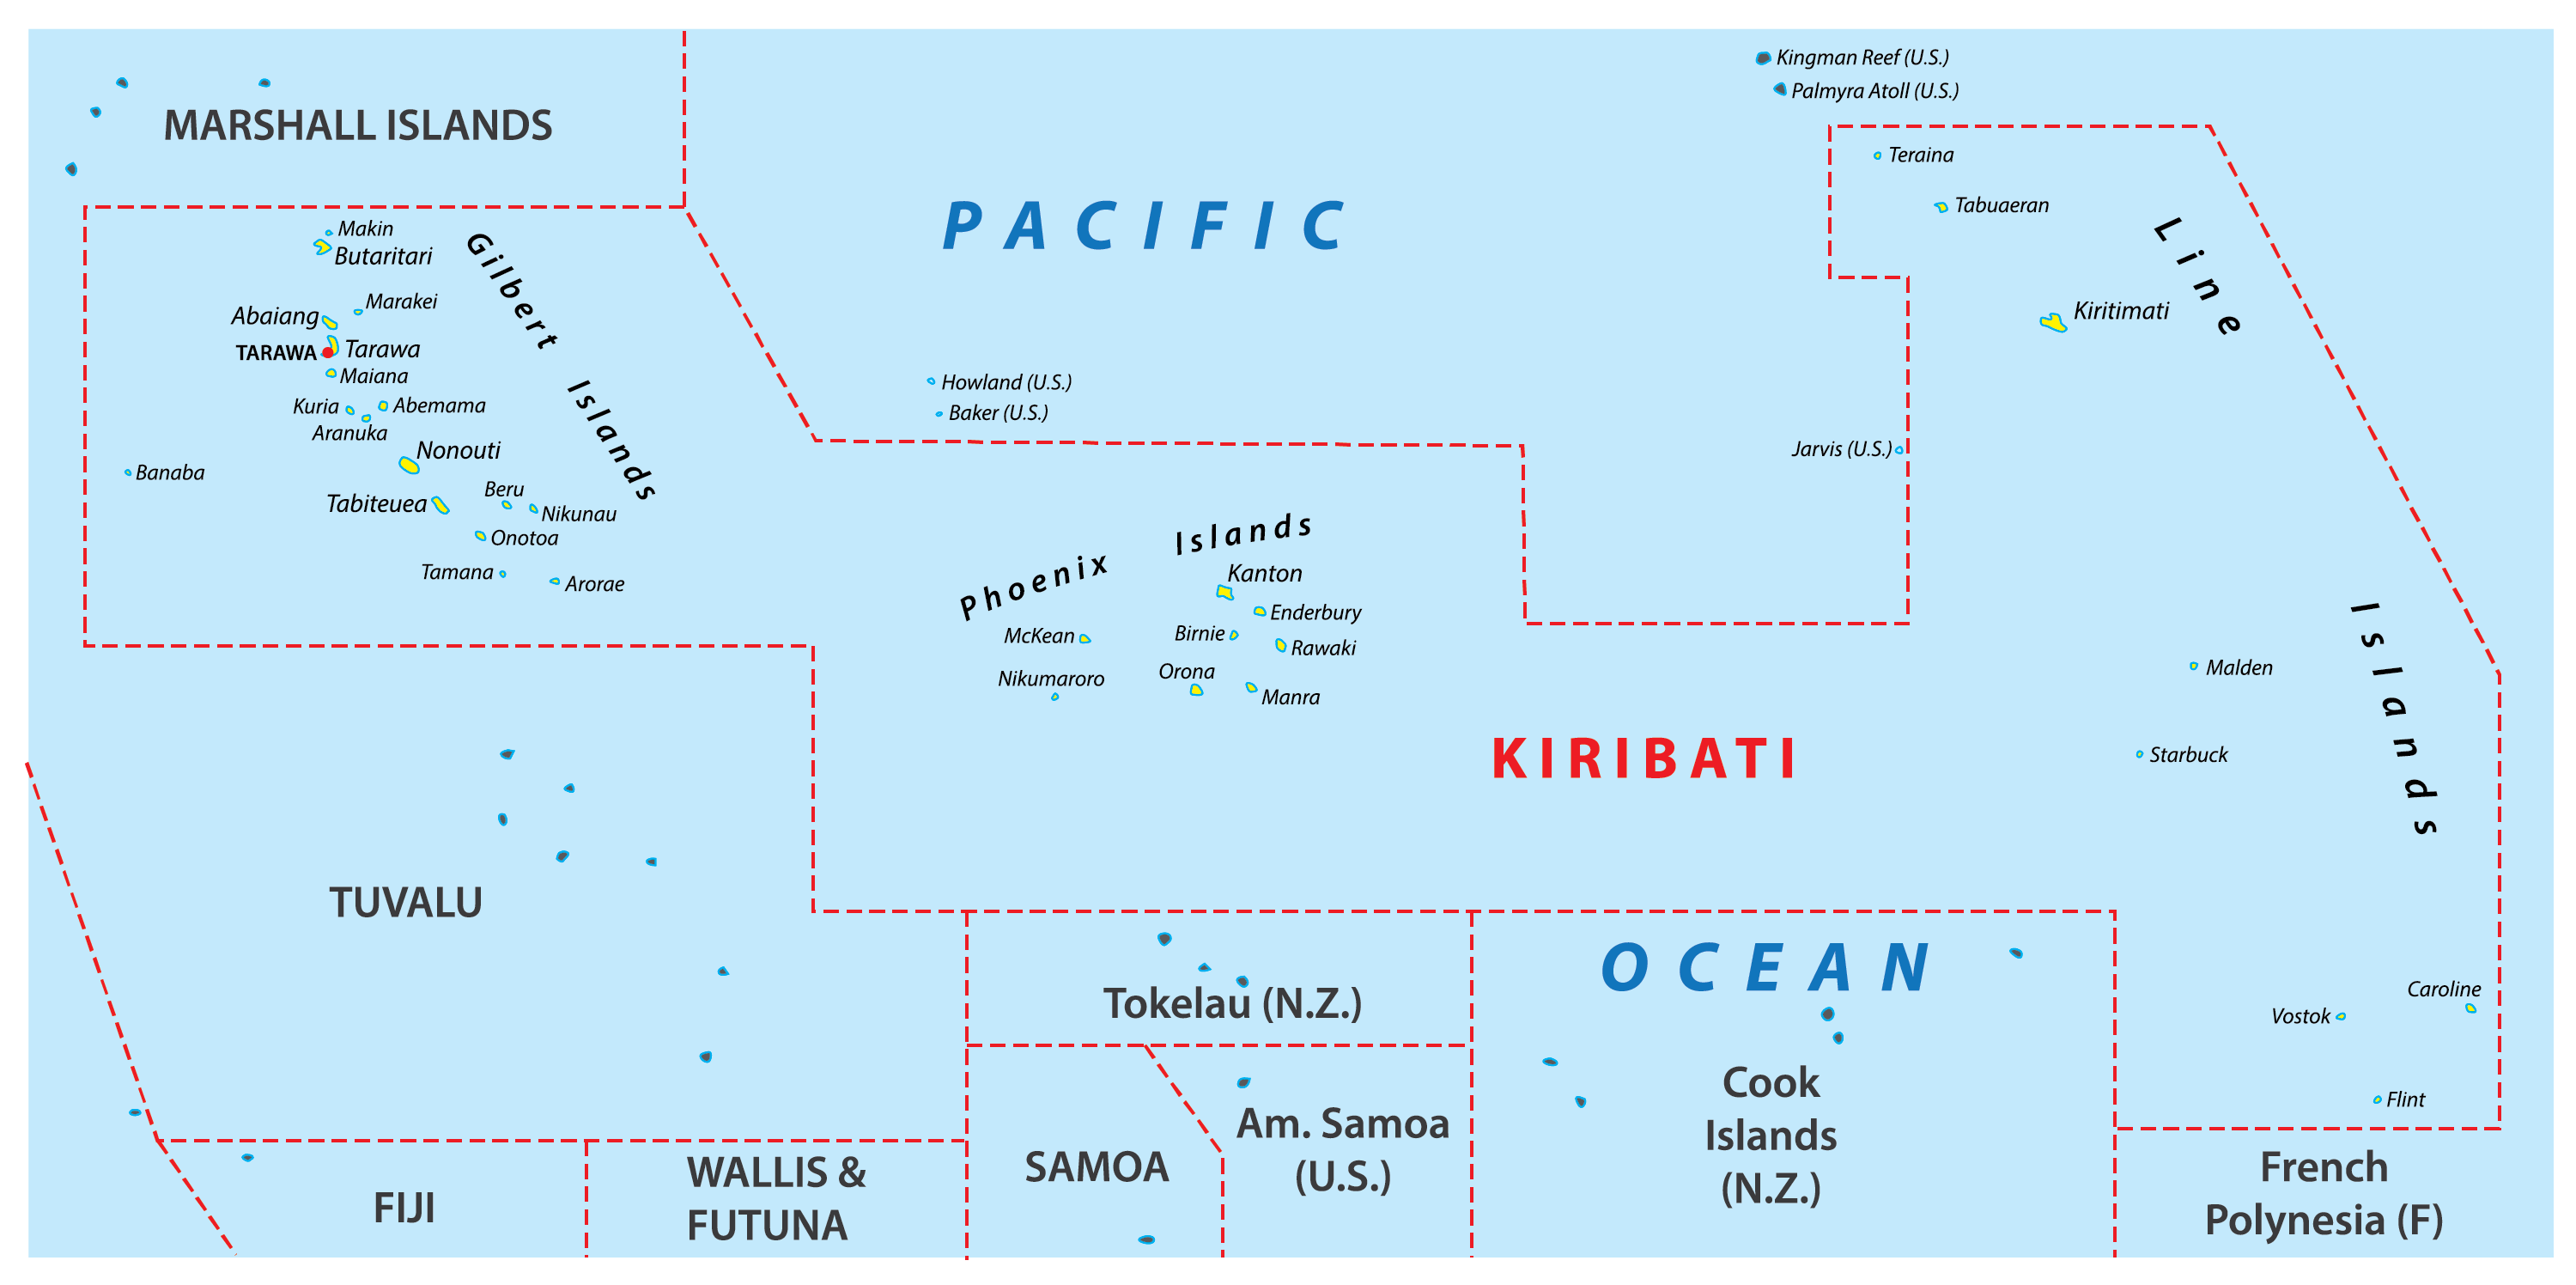 Map of Kiribati showing its 3 geographical units